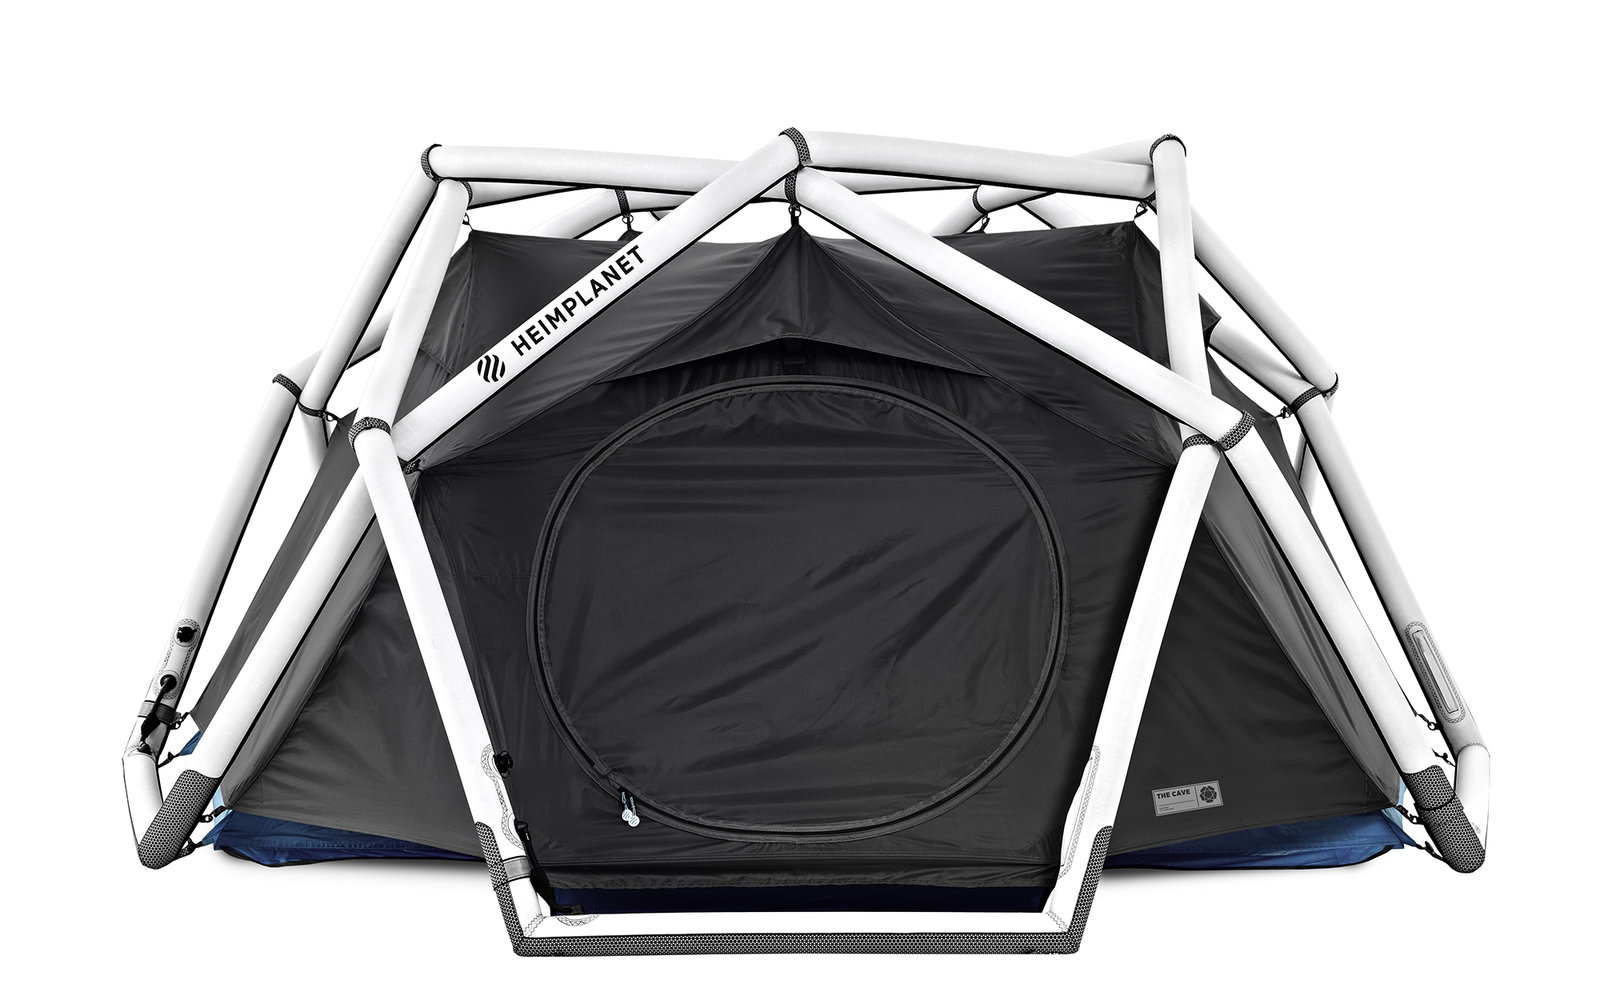 Heimplanet Cave Tent Camping Gear